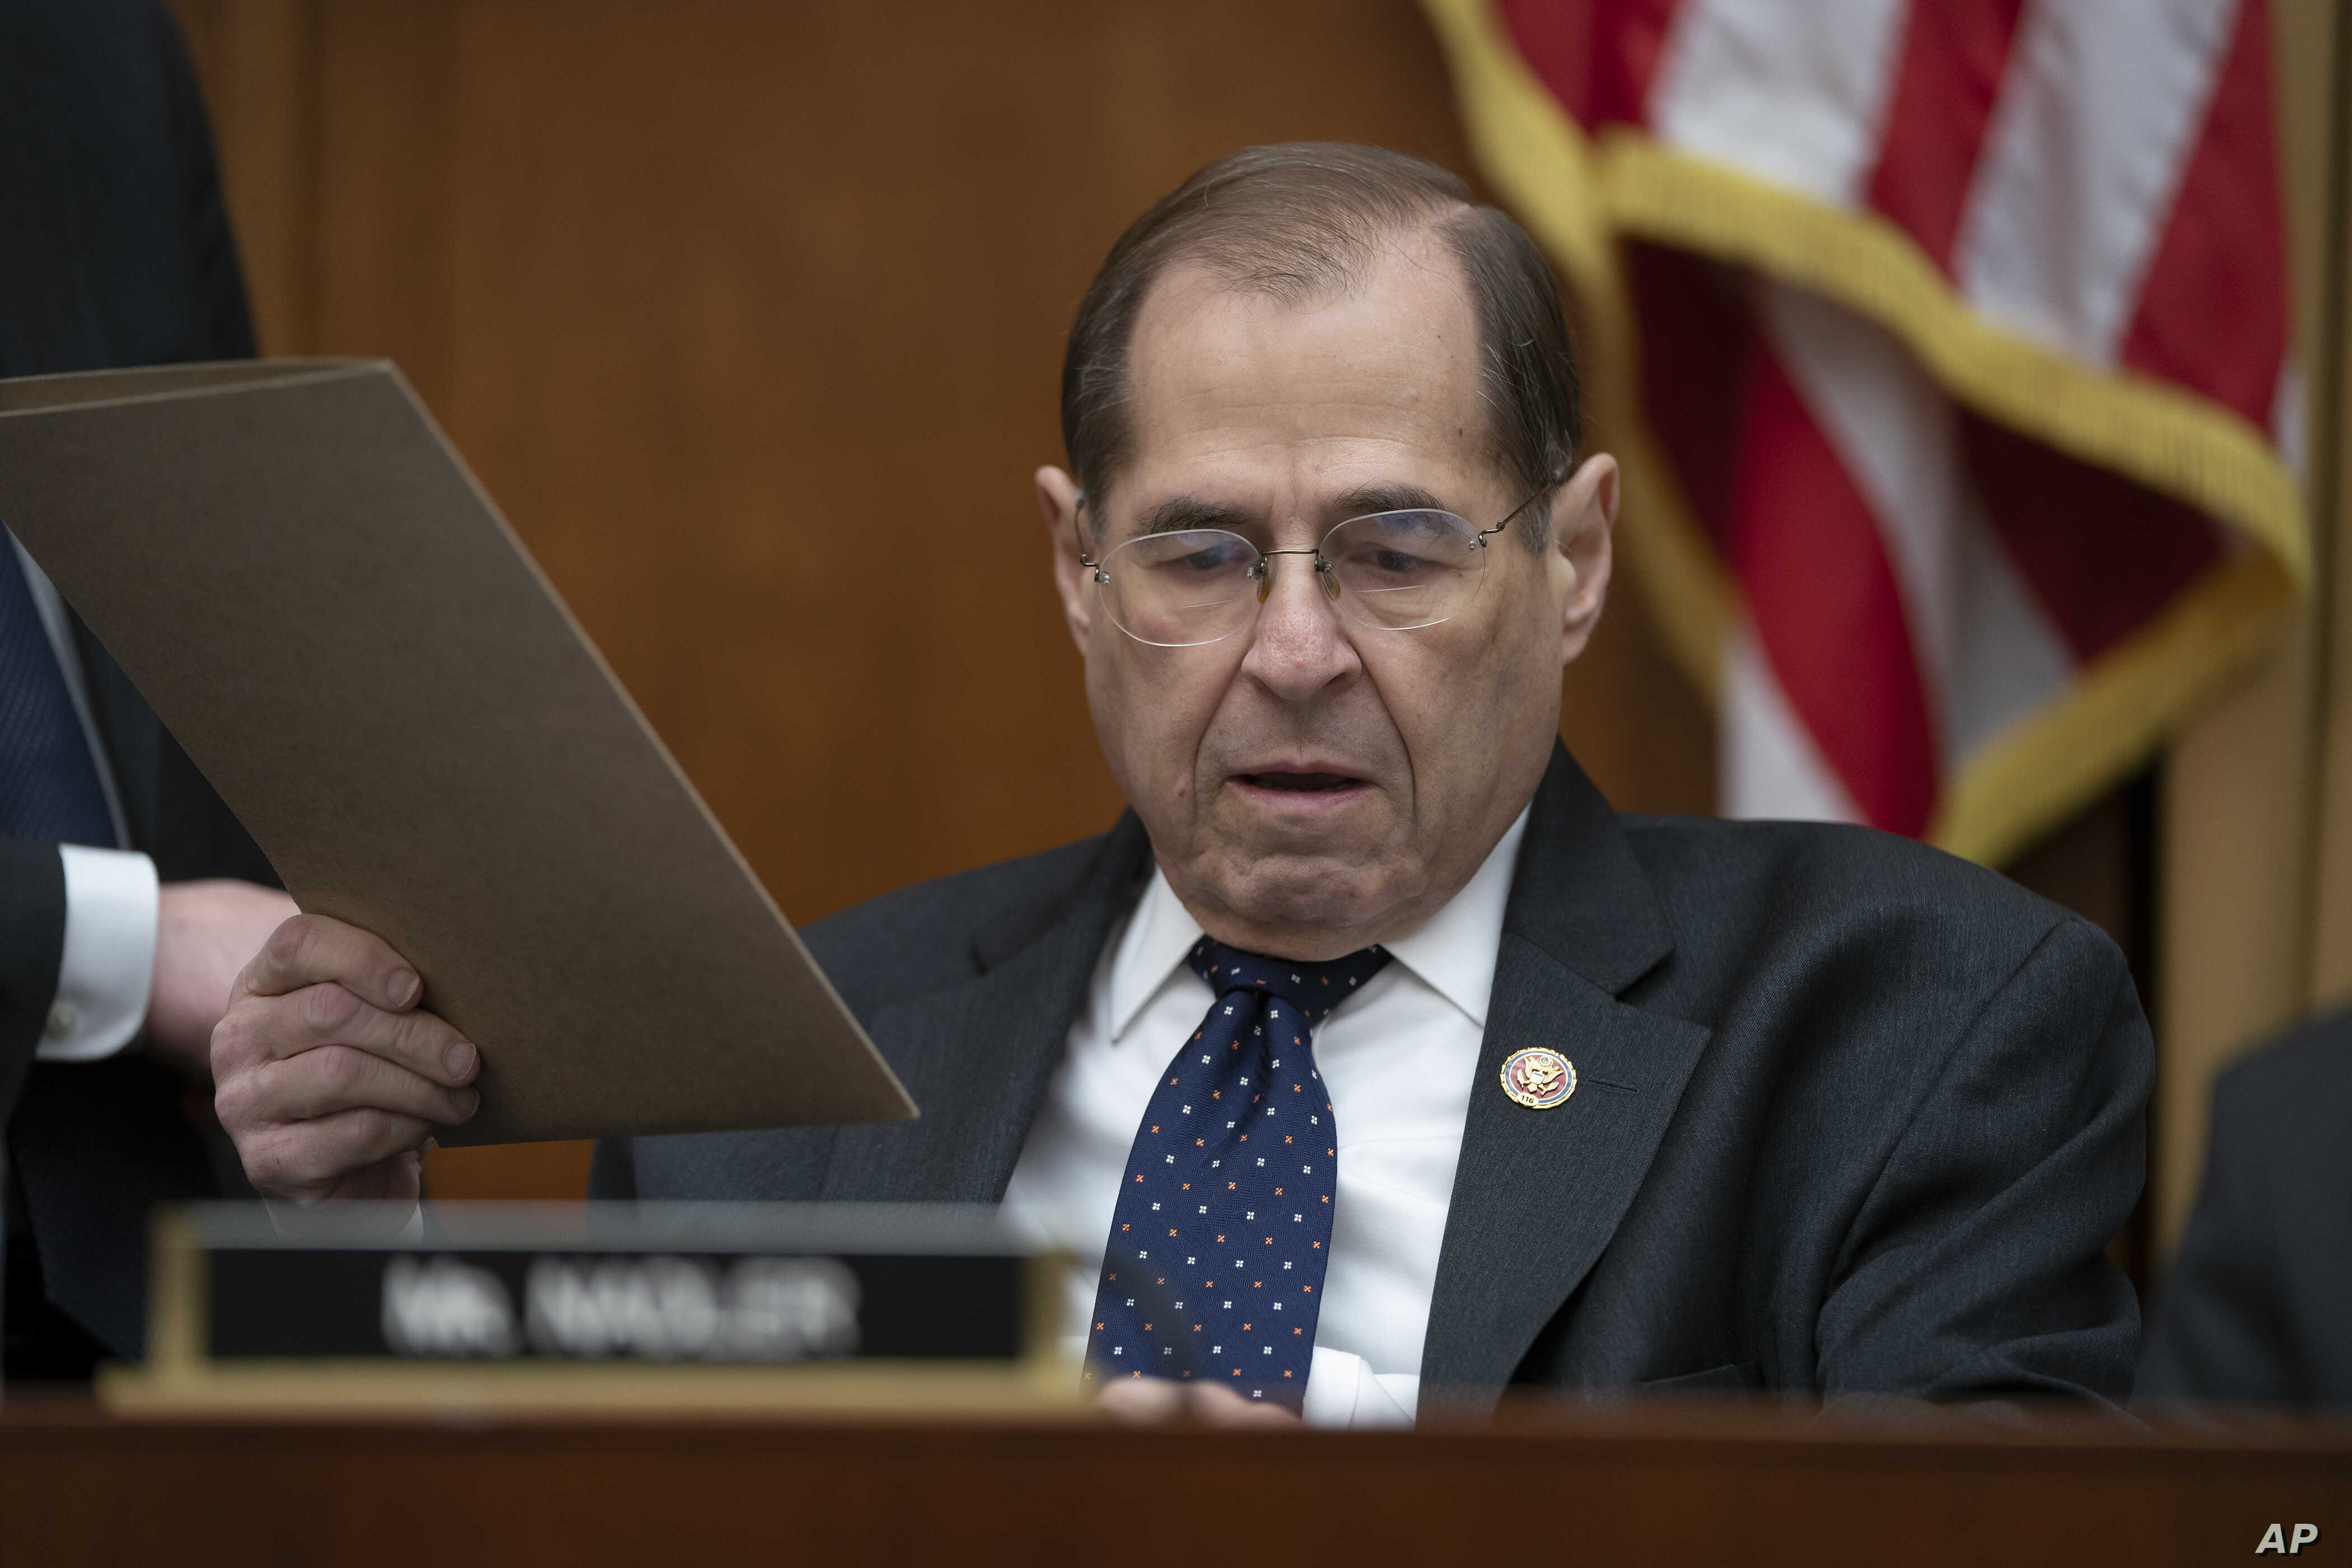 House Judiciary Committee Rep. Jerrold Nadler, D-N.Y., prepares for a hearing on the Equal Rights Amendment on Capitol Hill in Washington, April 30, 2019.